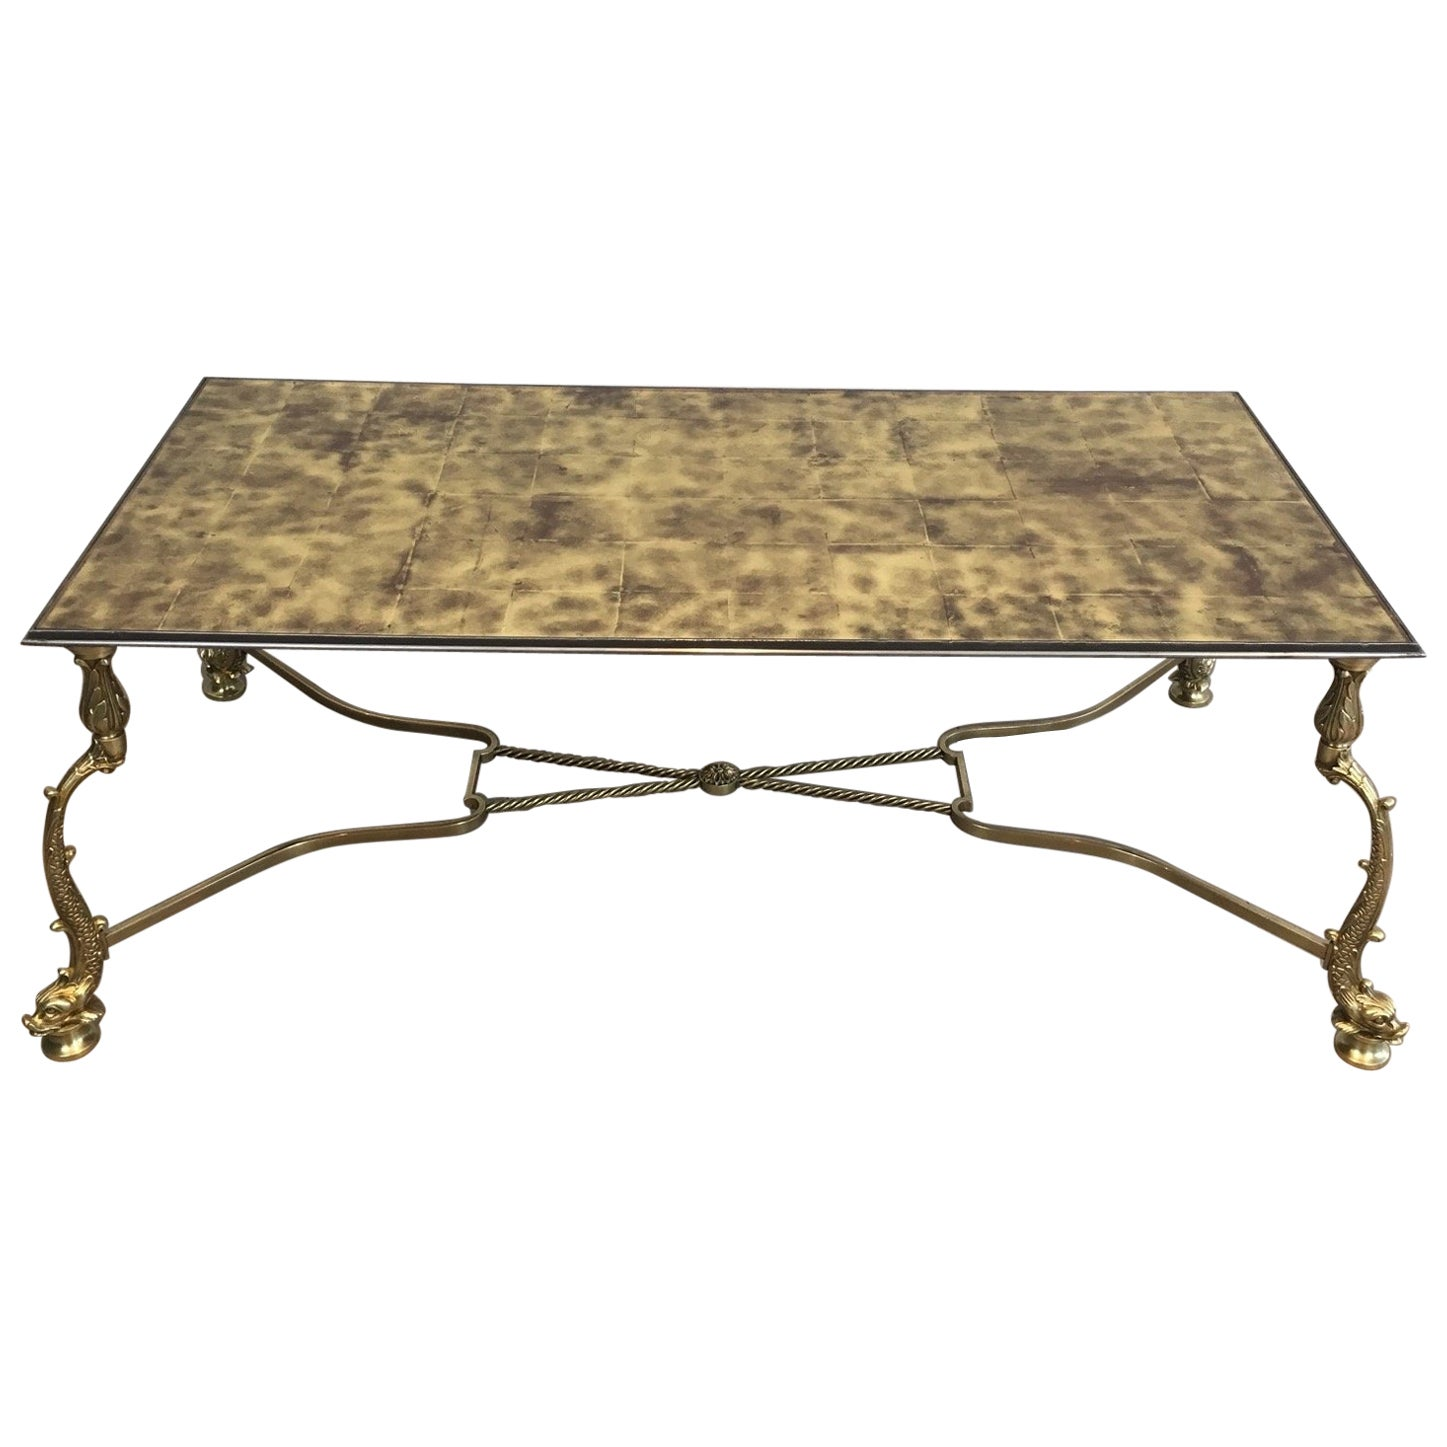 Rare Dolfins Neoclassical Brass Coffee Table with Beautiful Gold on Glass Top